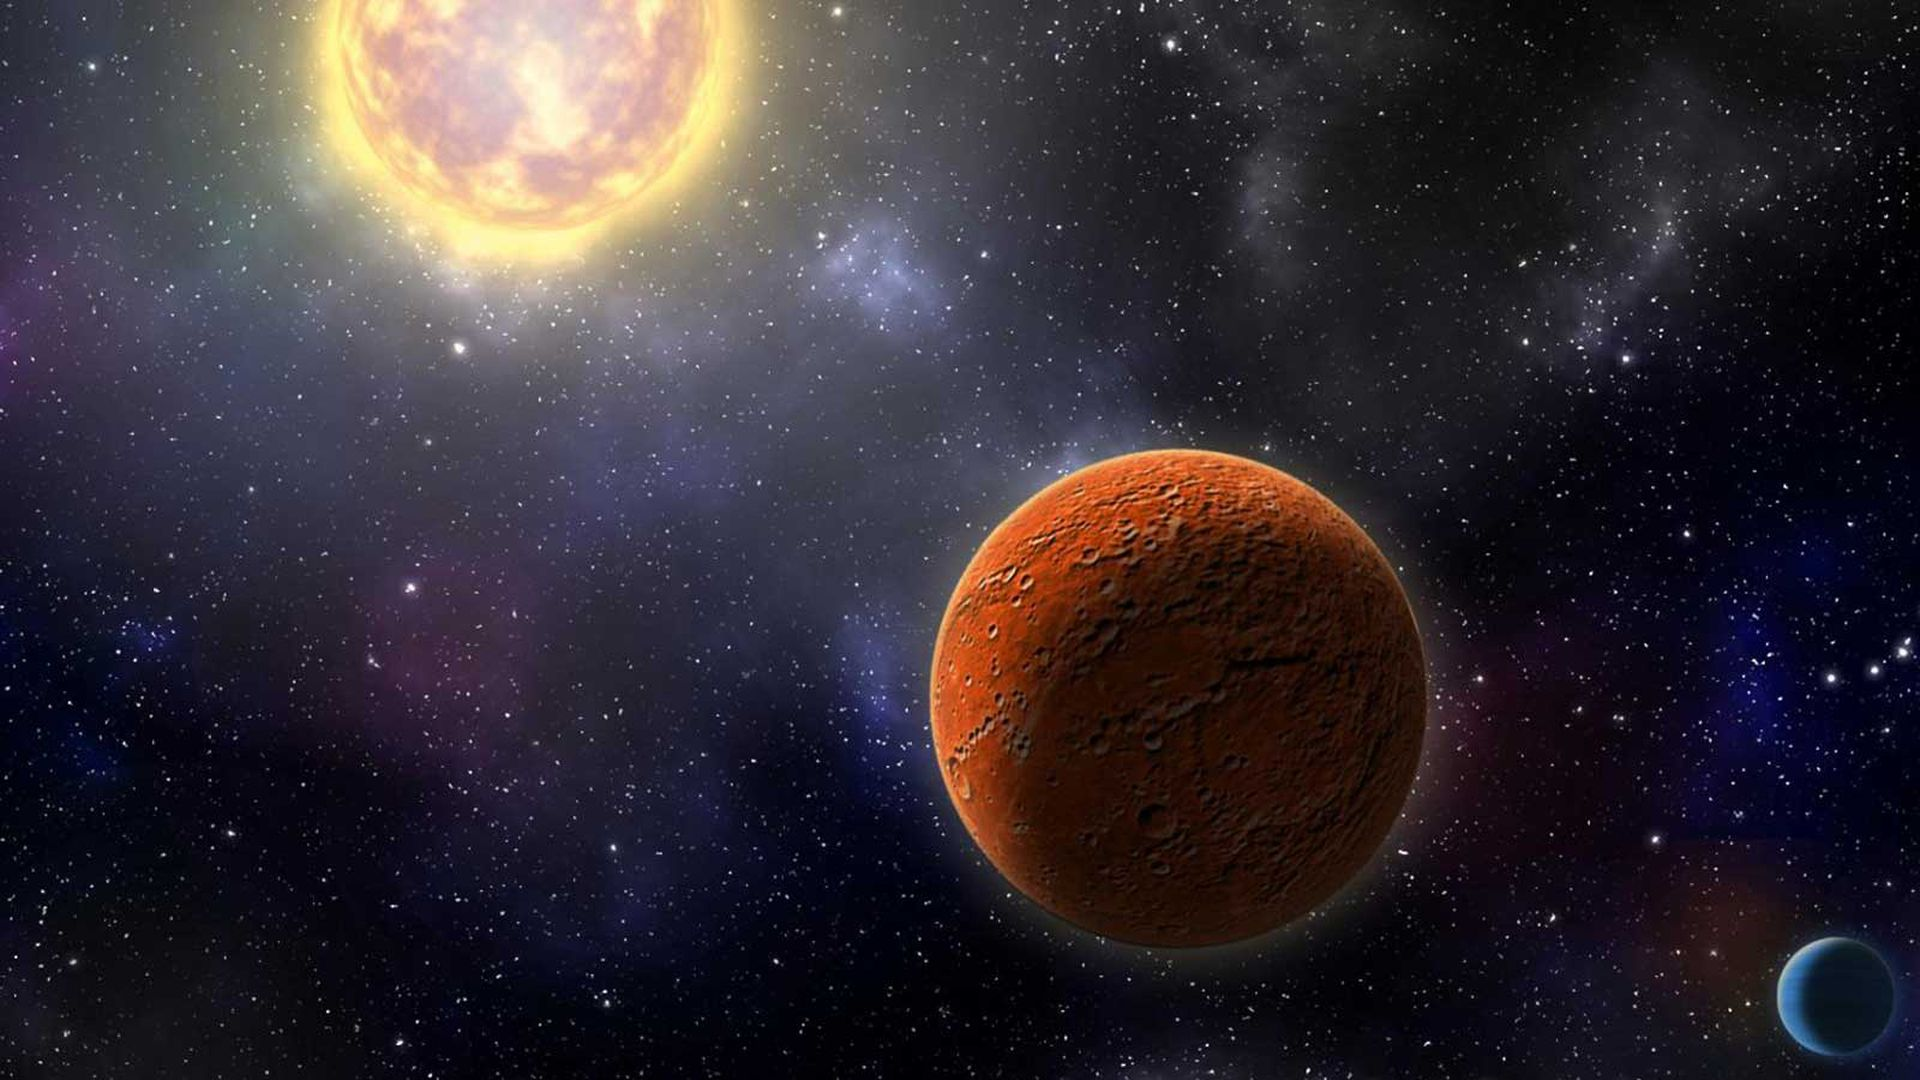 In this image, a red planet orbits a bright yellow sun.